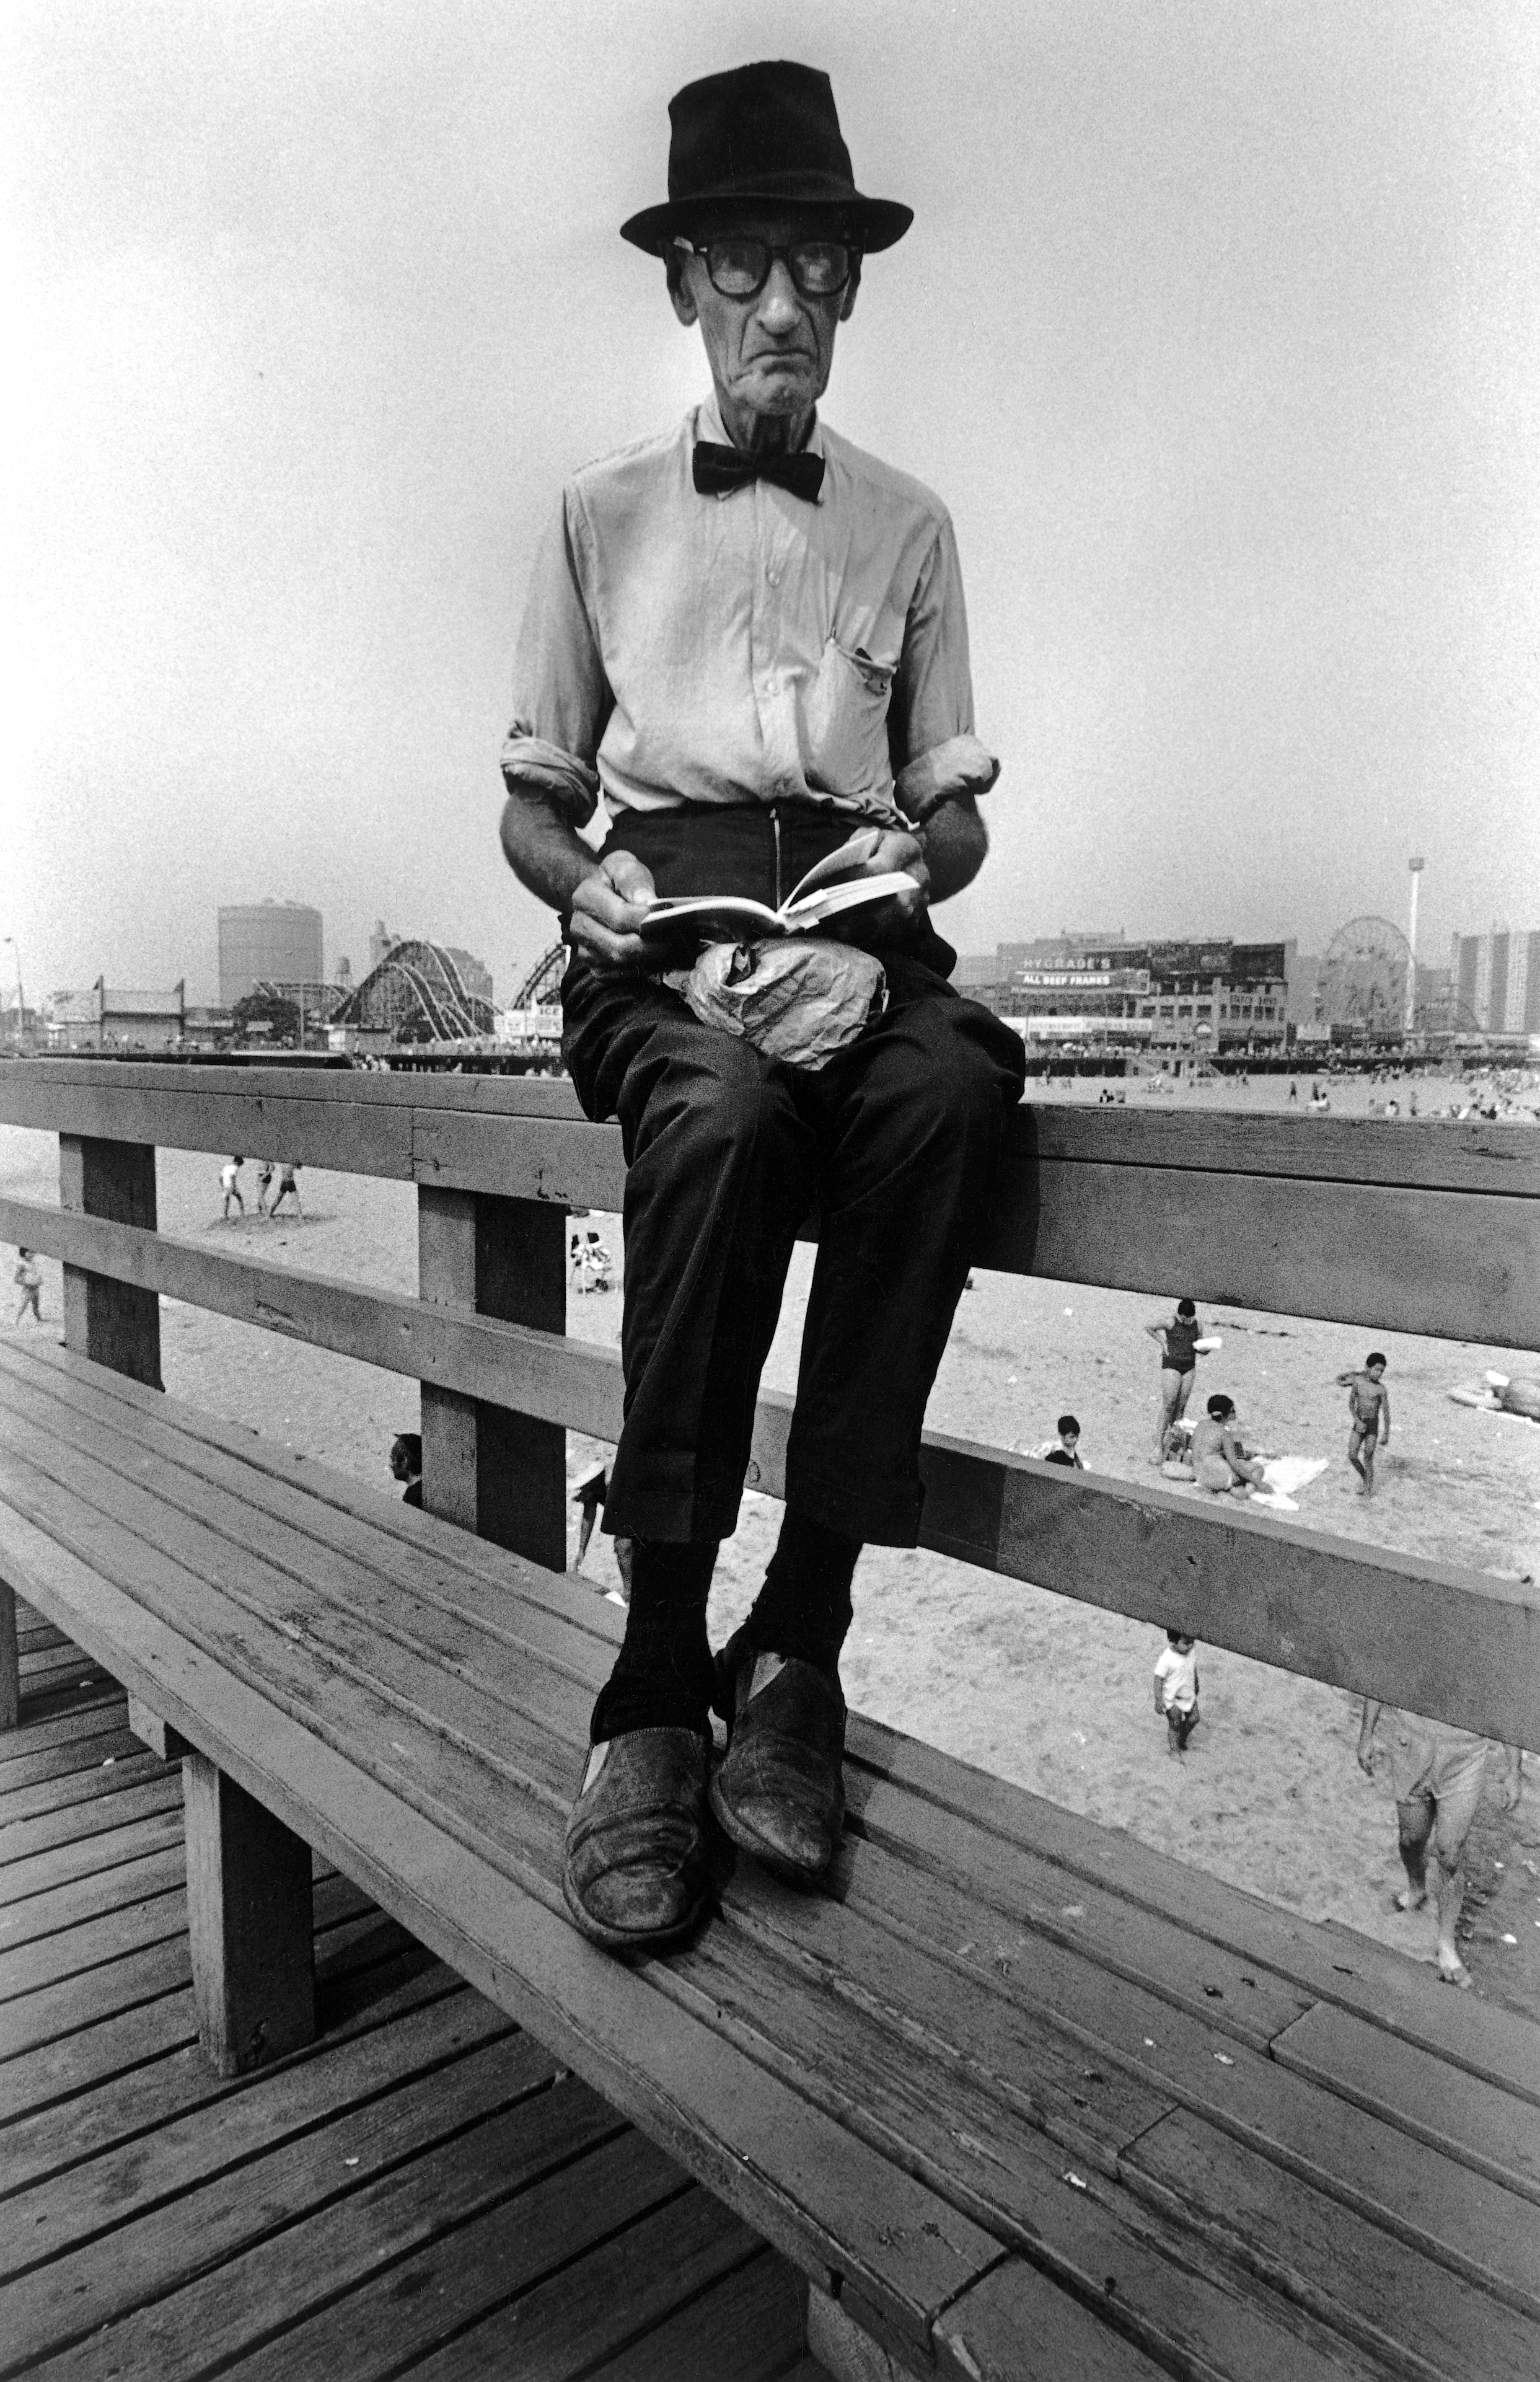 Man wearing bow tie, 1970. This photo was taken on the pier of the Coney Island Beach in Brooklyn during the summer of 1970. For me while it's quite graphic with the older man sitting against the sky, I think it shows a disappearing way of life, a man dressed with bow tie and long sleeved white shirt reading a book, with lunch on his lap, in the middle of summer at the beach. He's out of step with the people enjoying the beach below.